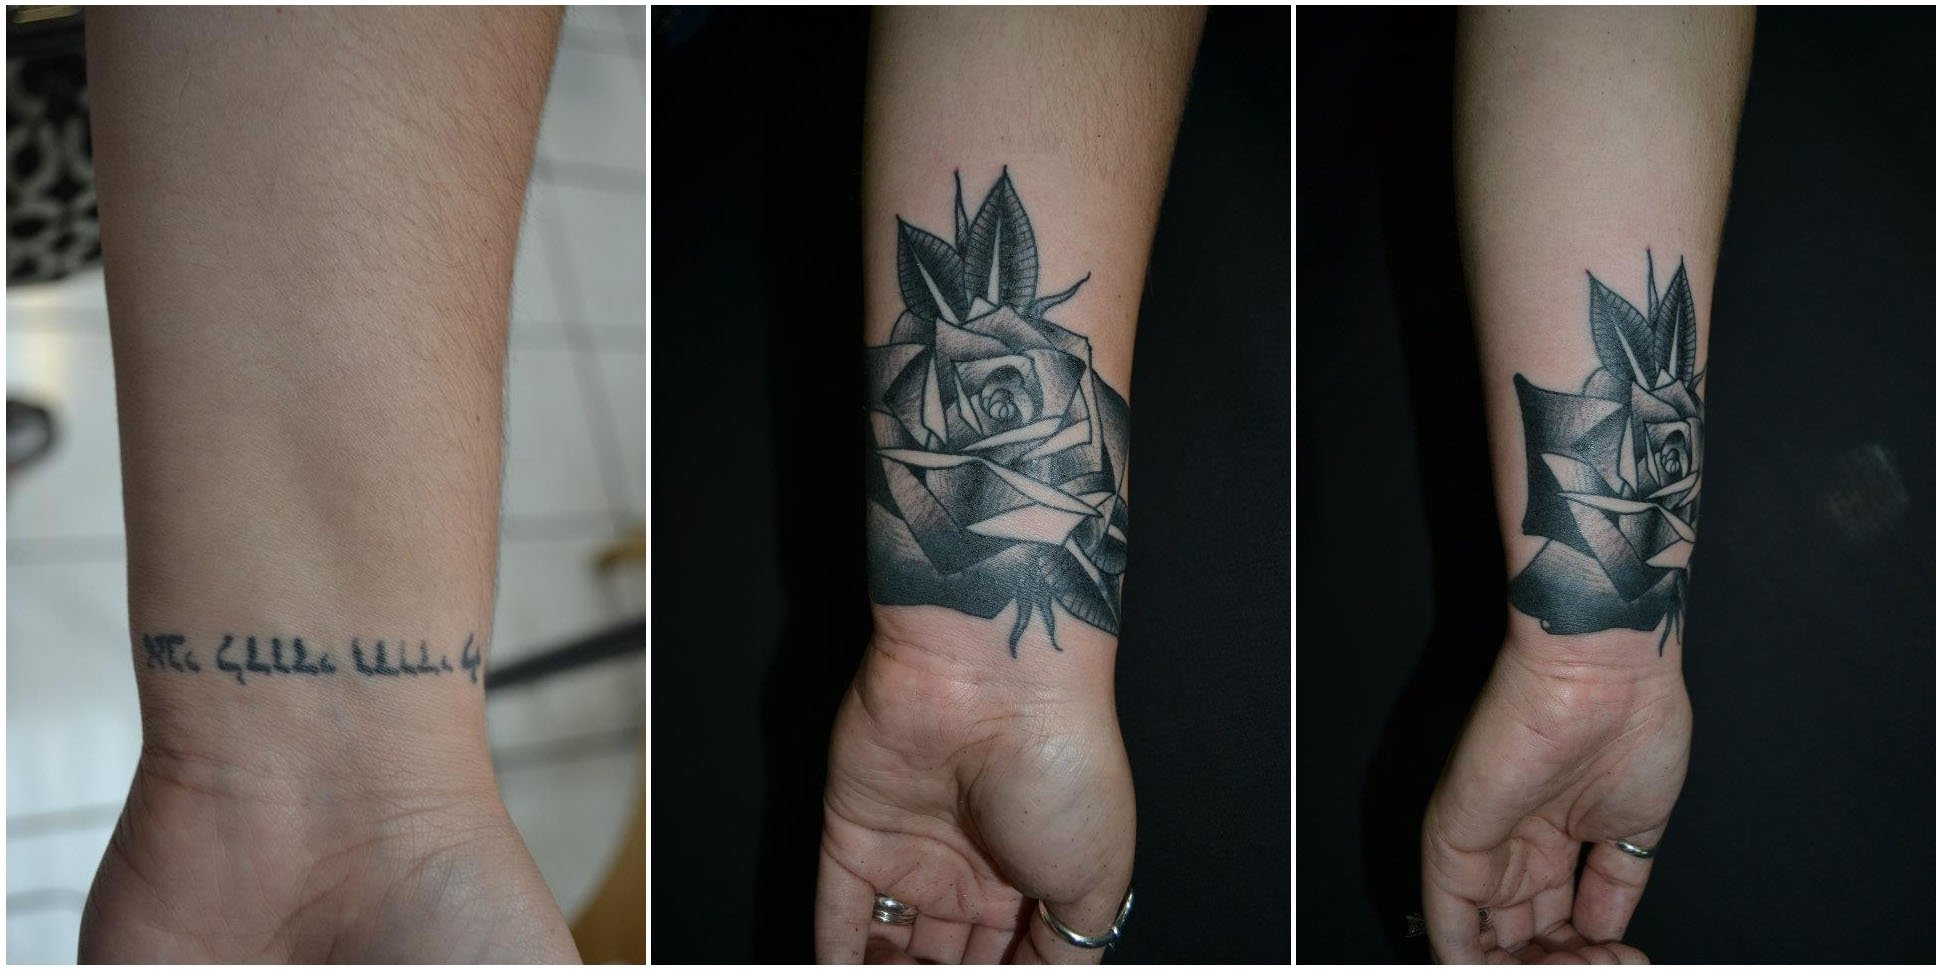 10 Attractive Big Tattoo Cover Up Ideas lotus tattoo raymond wallace tattooing black rose cover up 1 2020